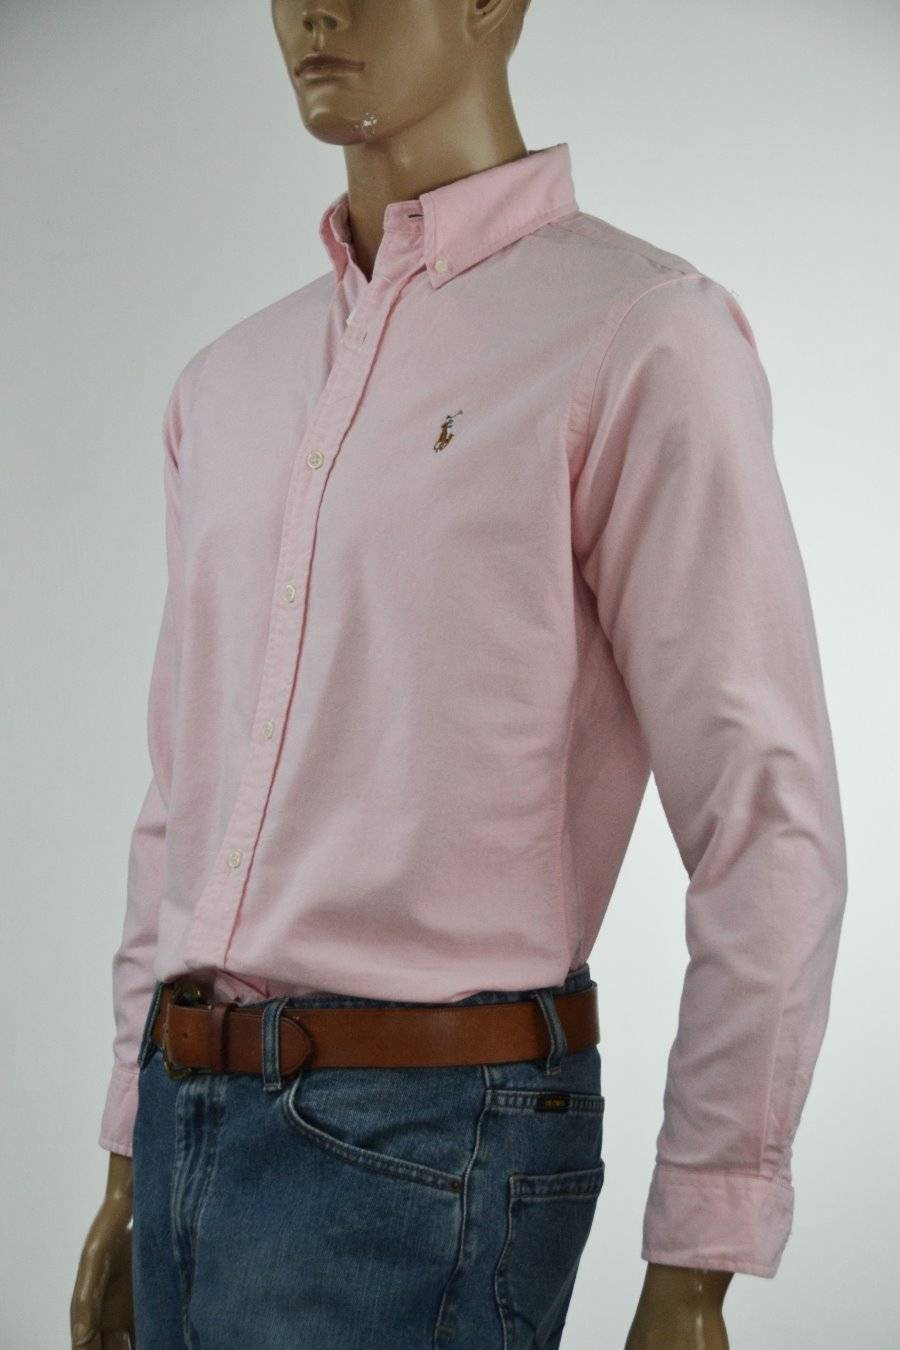 Ralph Lauren Classic Fit Pink Oxford Cotton Long Sleeve Shirt Pony- NWT-Small